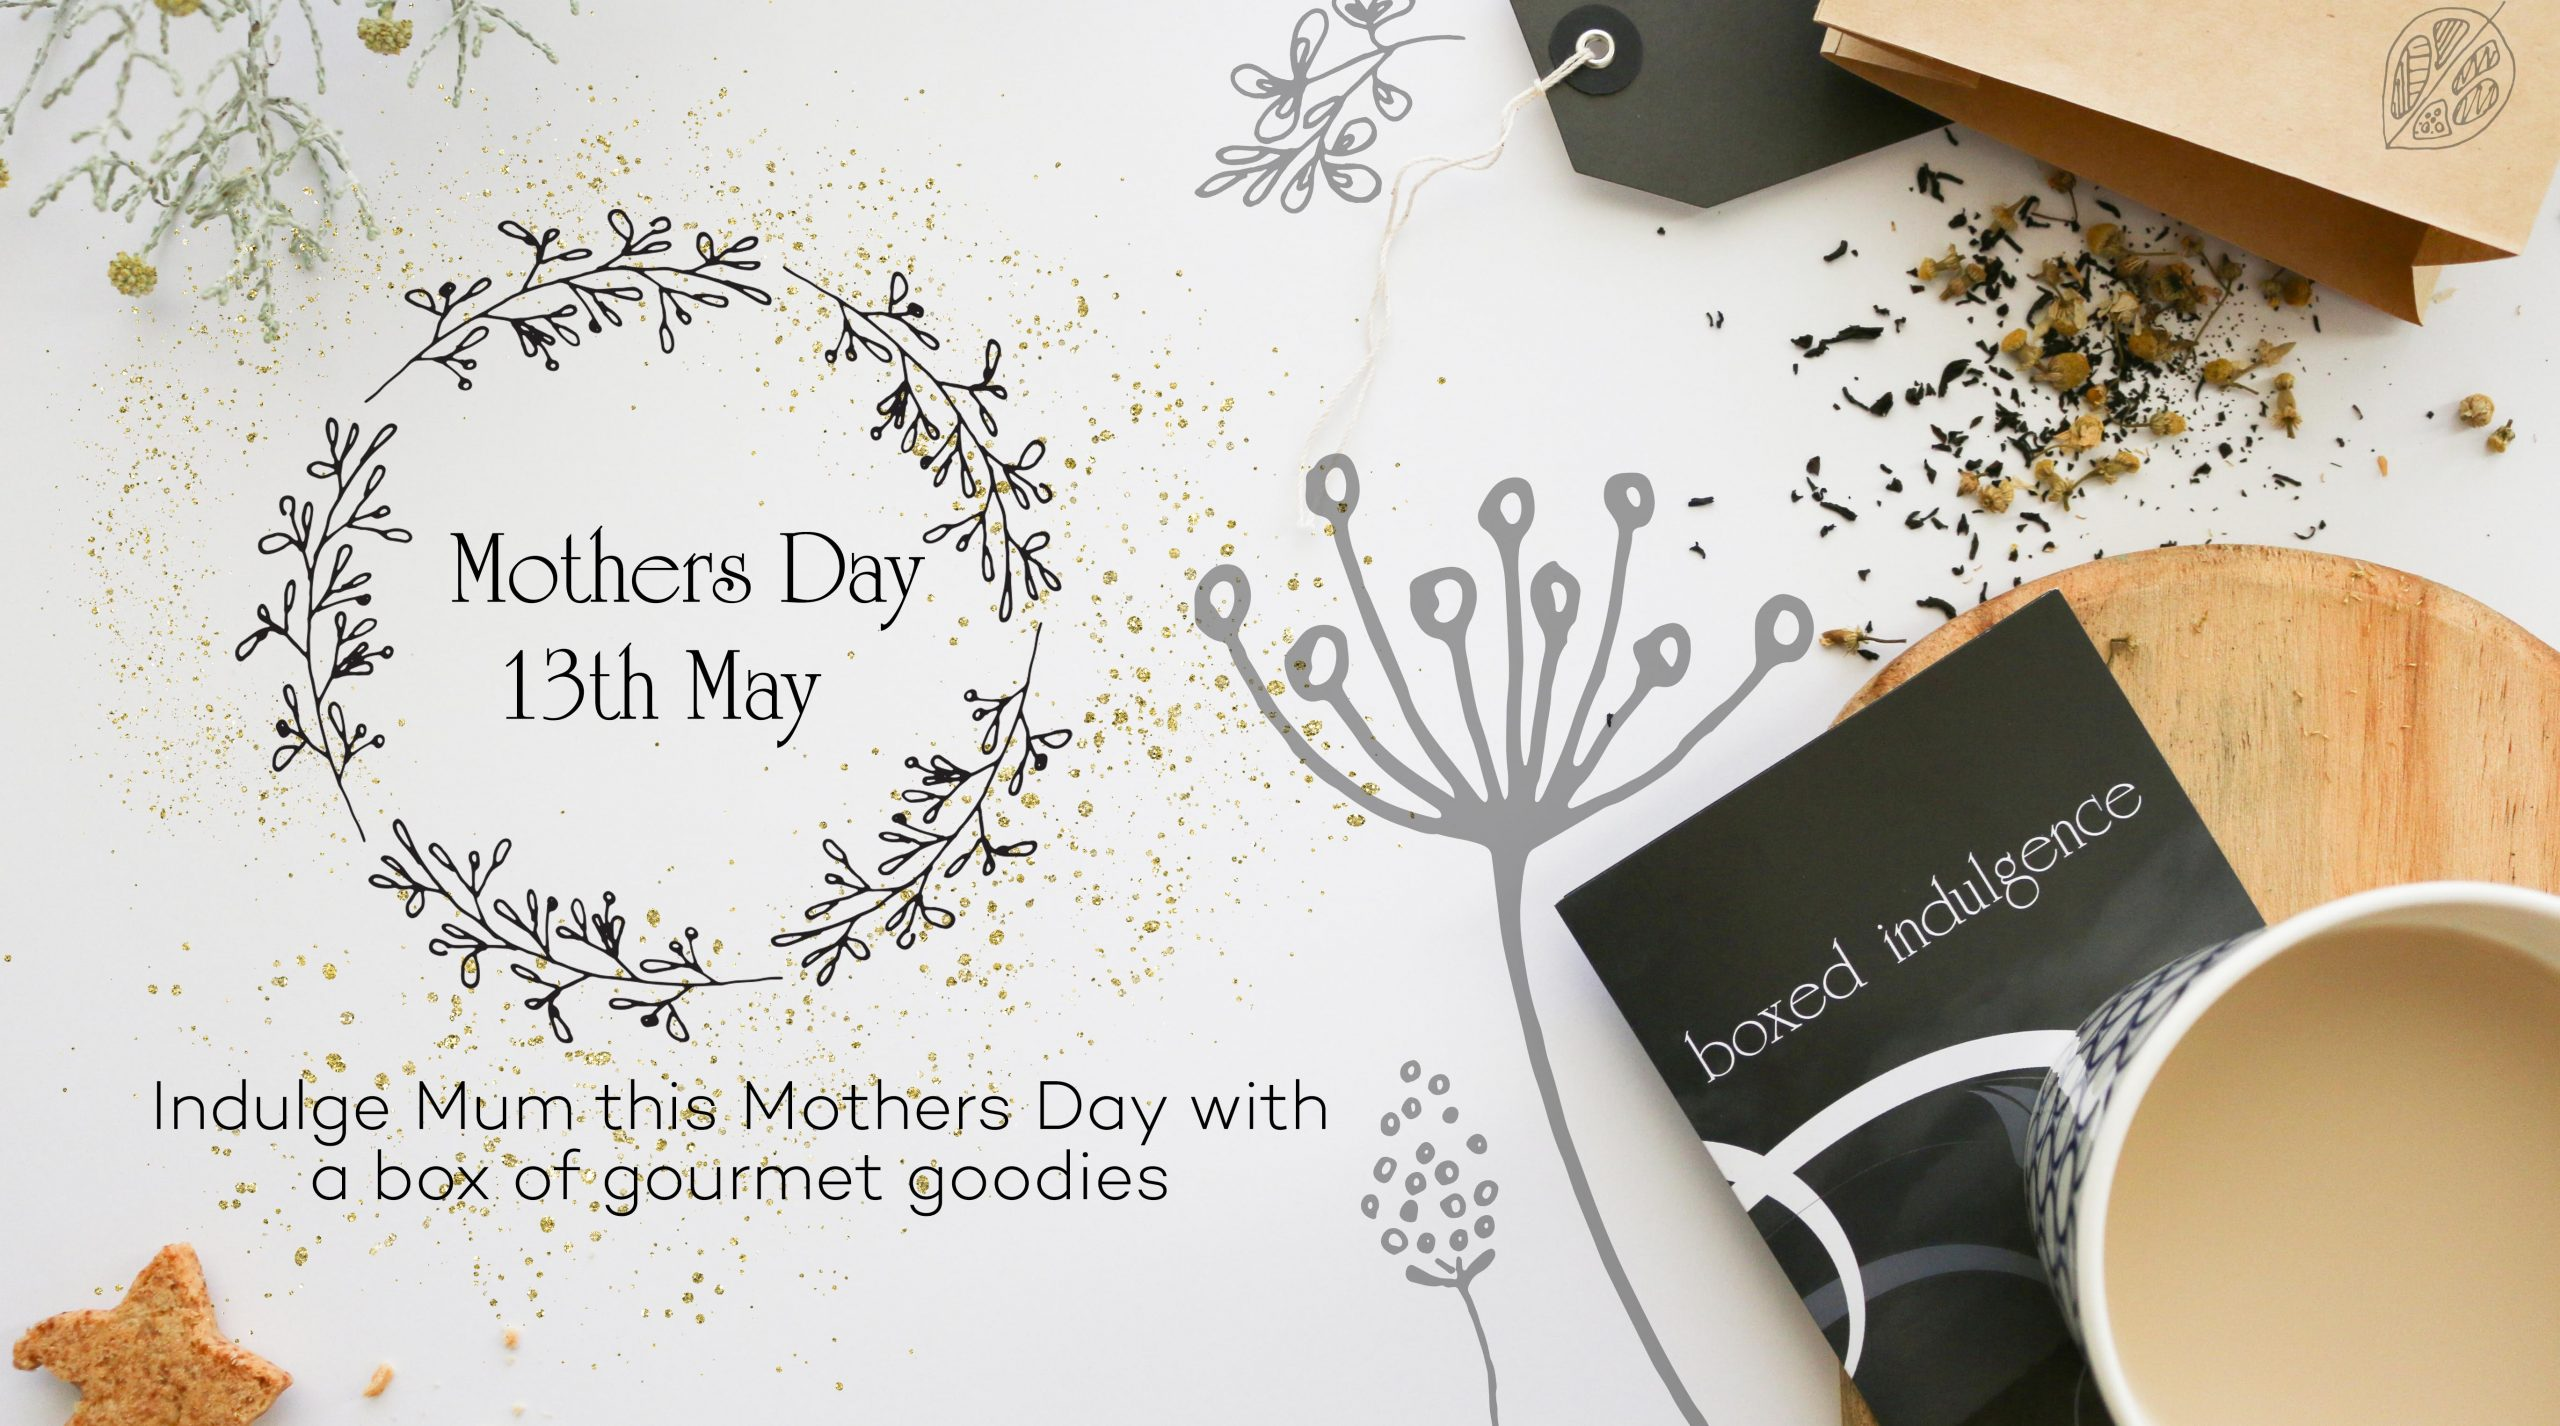 Mothers Day Banner 2018 - Boxed Indulgence Gourmet Hampers